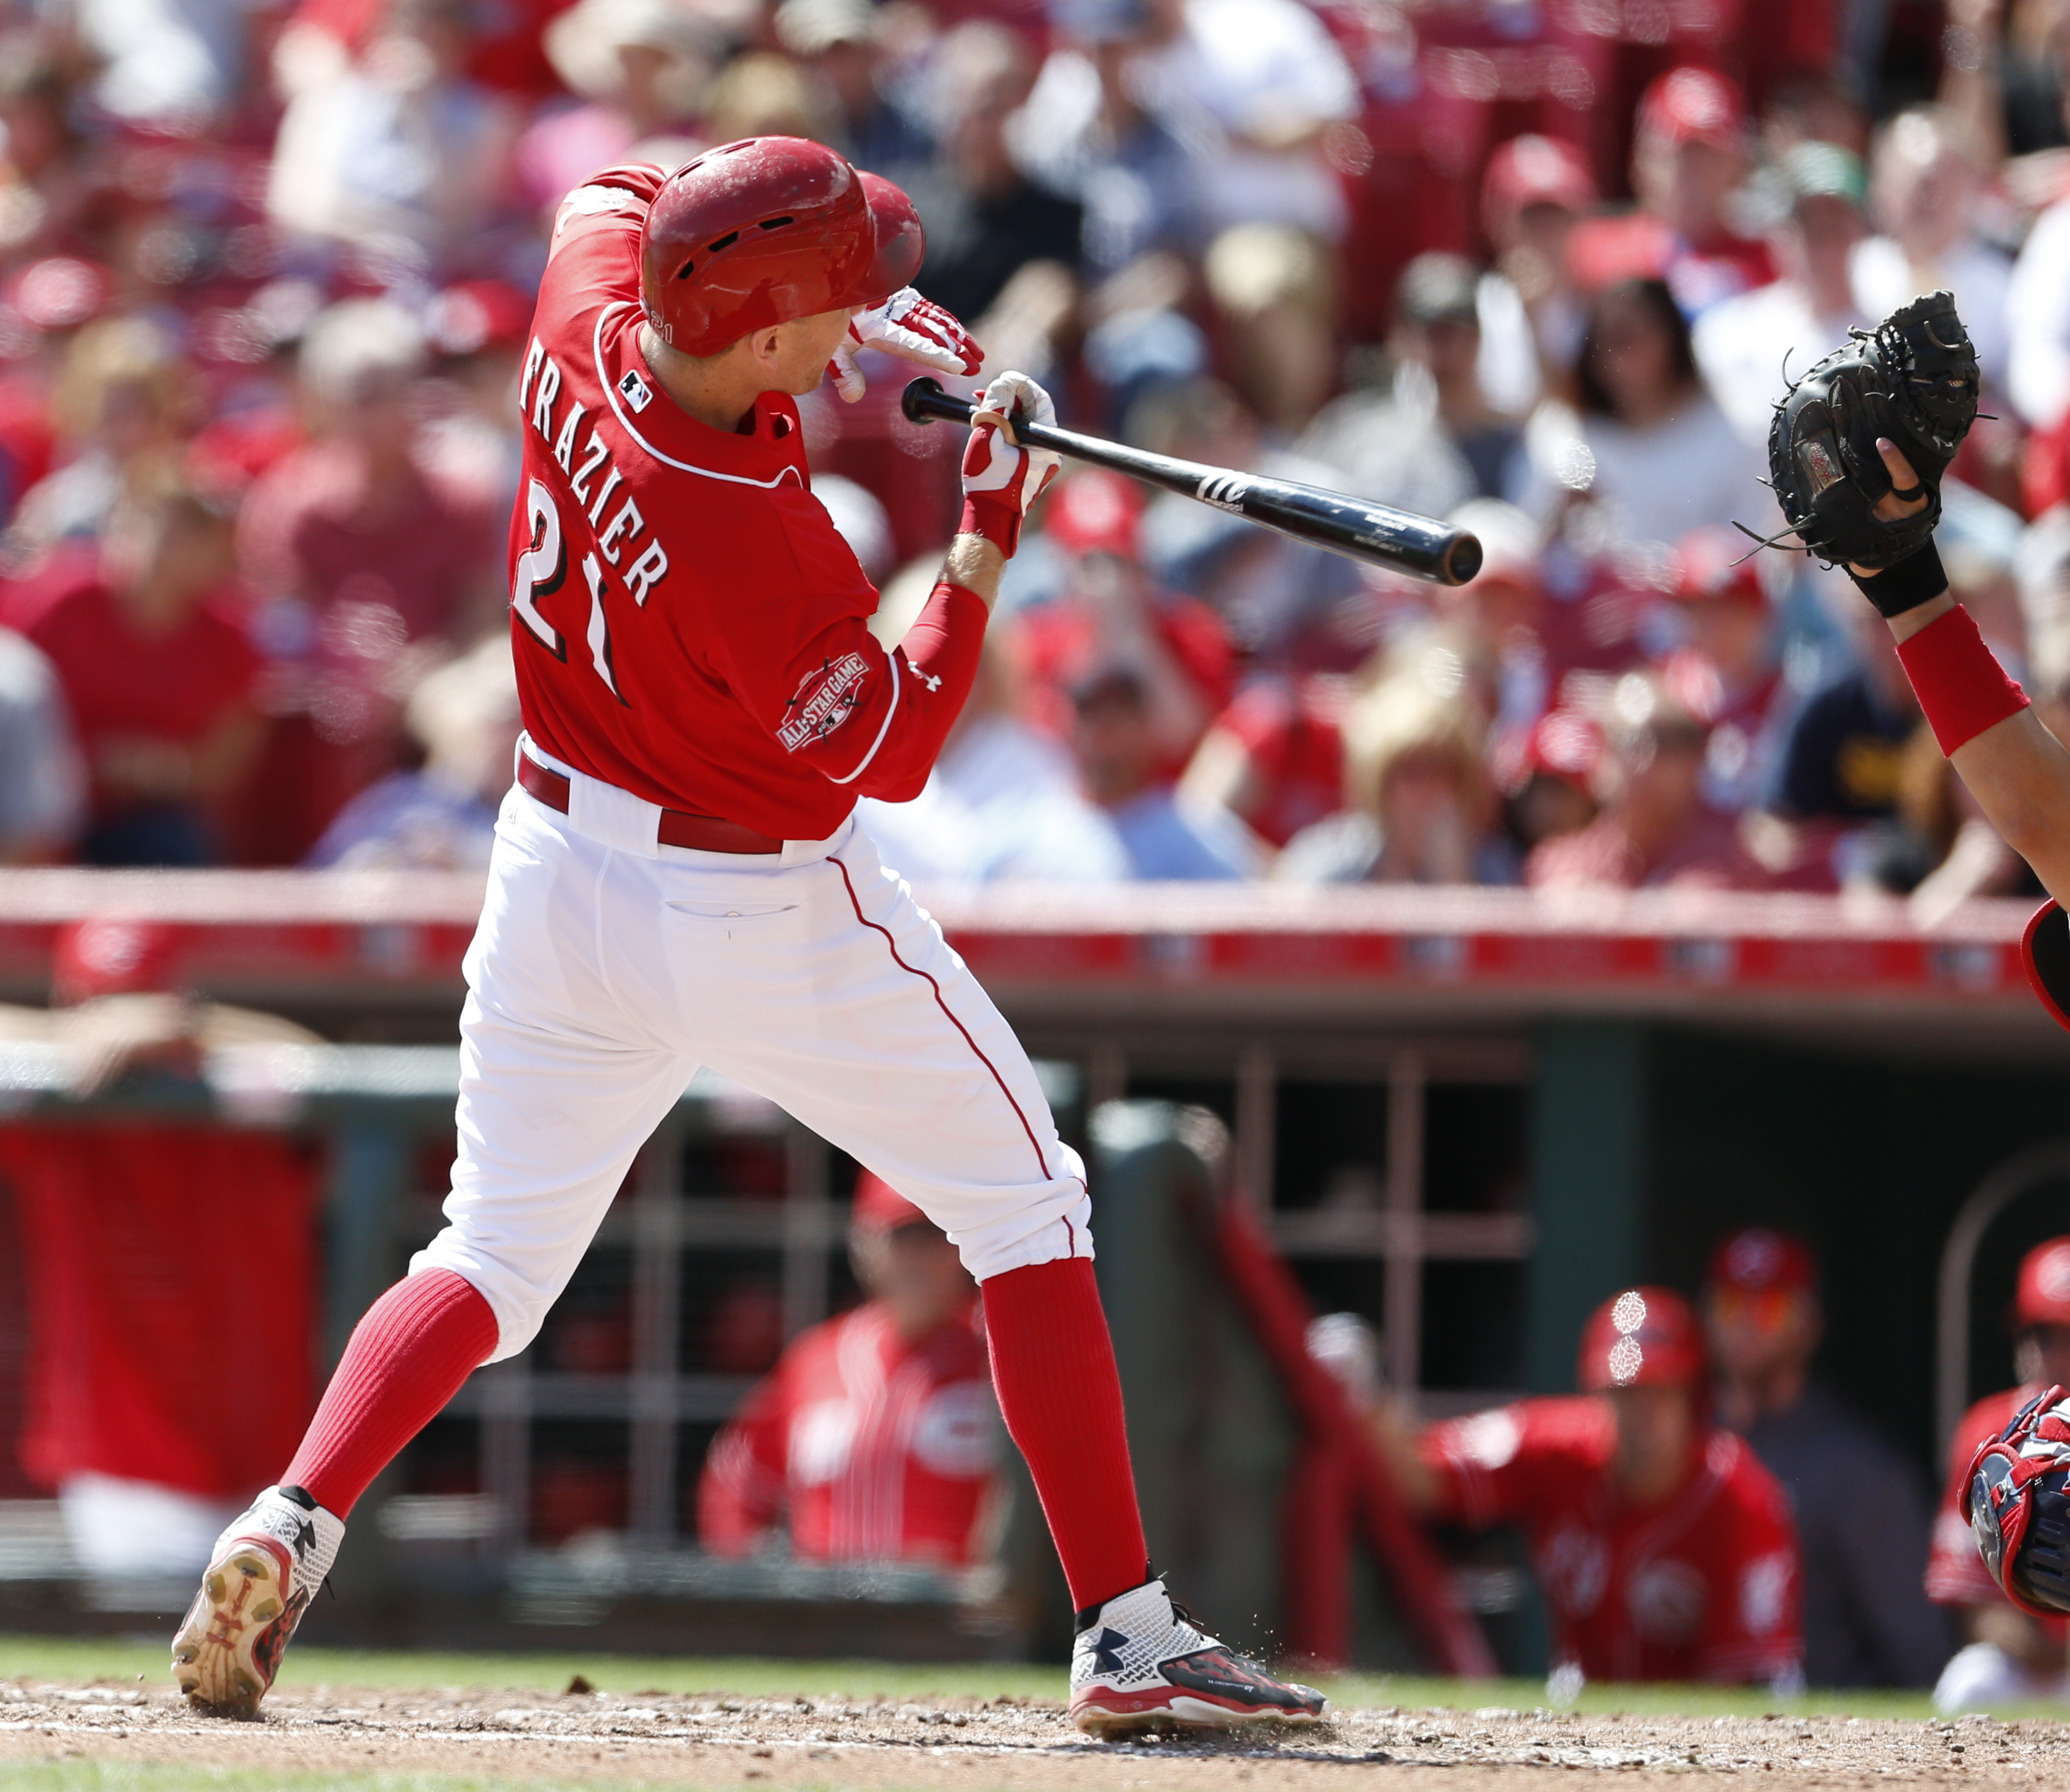 Cincinnati Reds' Todd Frazier (21) ducks away from a high inside pitch, thrown by St. Louis Cardinals starting pitcher Michael Wacha, during the fourth inning of a baseball game, Sunday, Sept. 13, 2015, in Cincinnati. (AP Photo/Gary Landers)